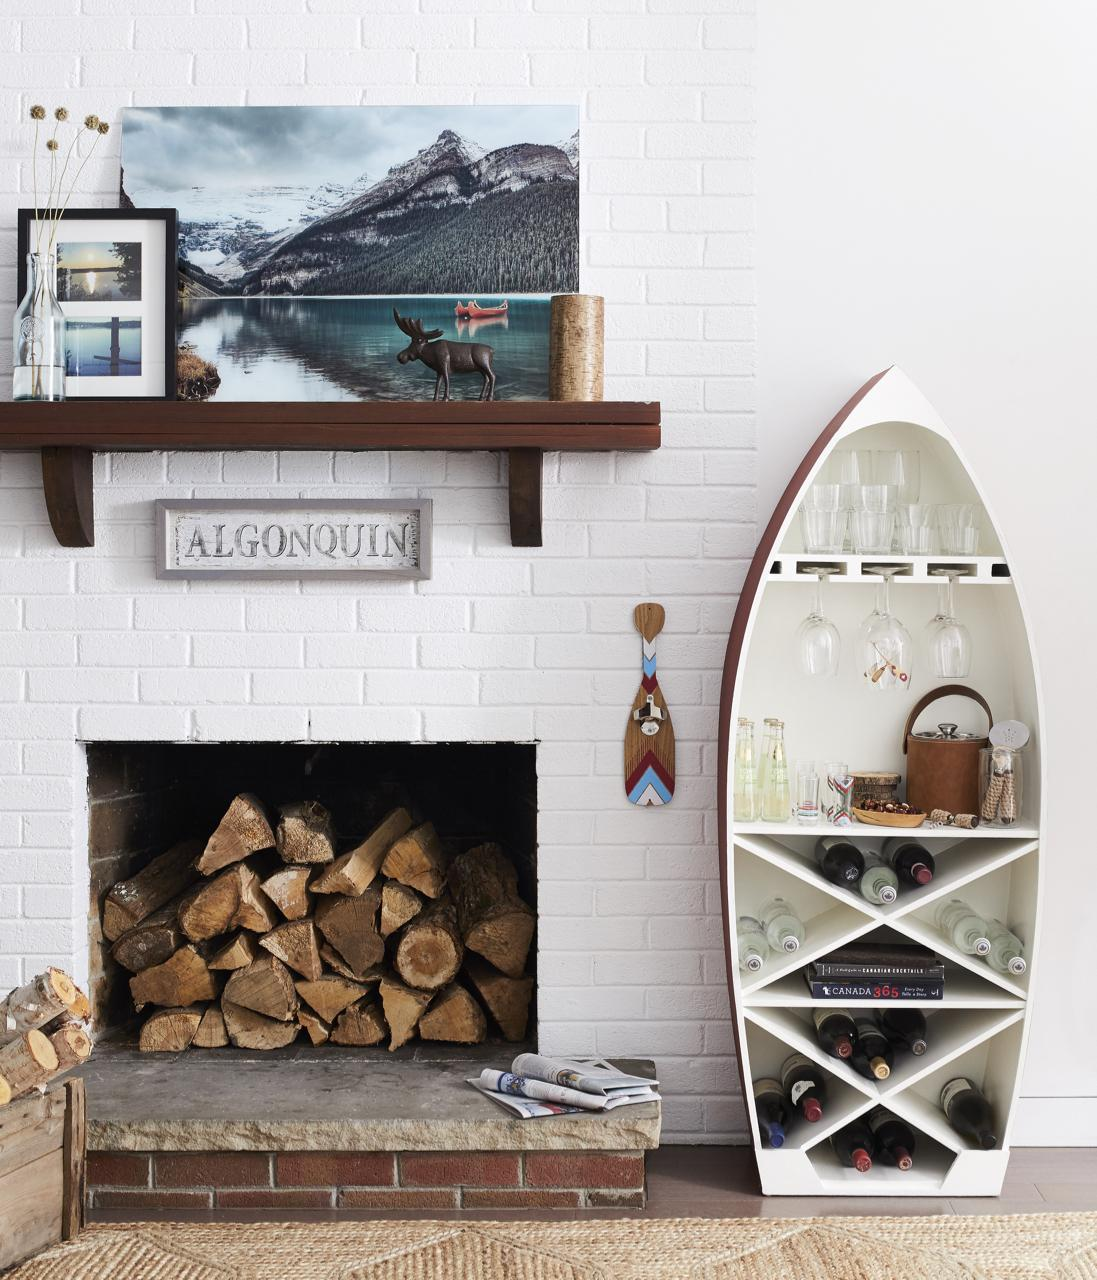 I thought the dory boat bar cabinet was a cutie — could not resist featuring that one. That photograph art of Lake Louise is an absolute stunner and printed on glass. We giggled on set about how the moose sculpture is placed so it looks like he's walking on water.